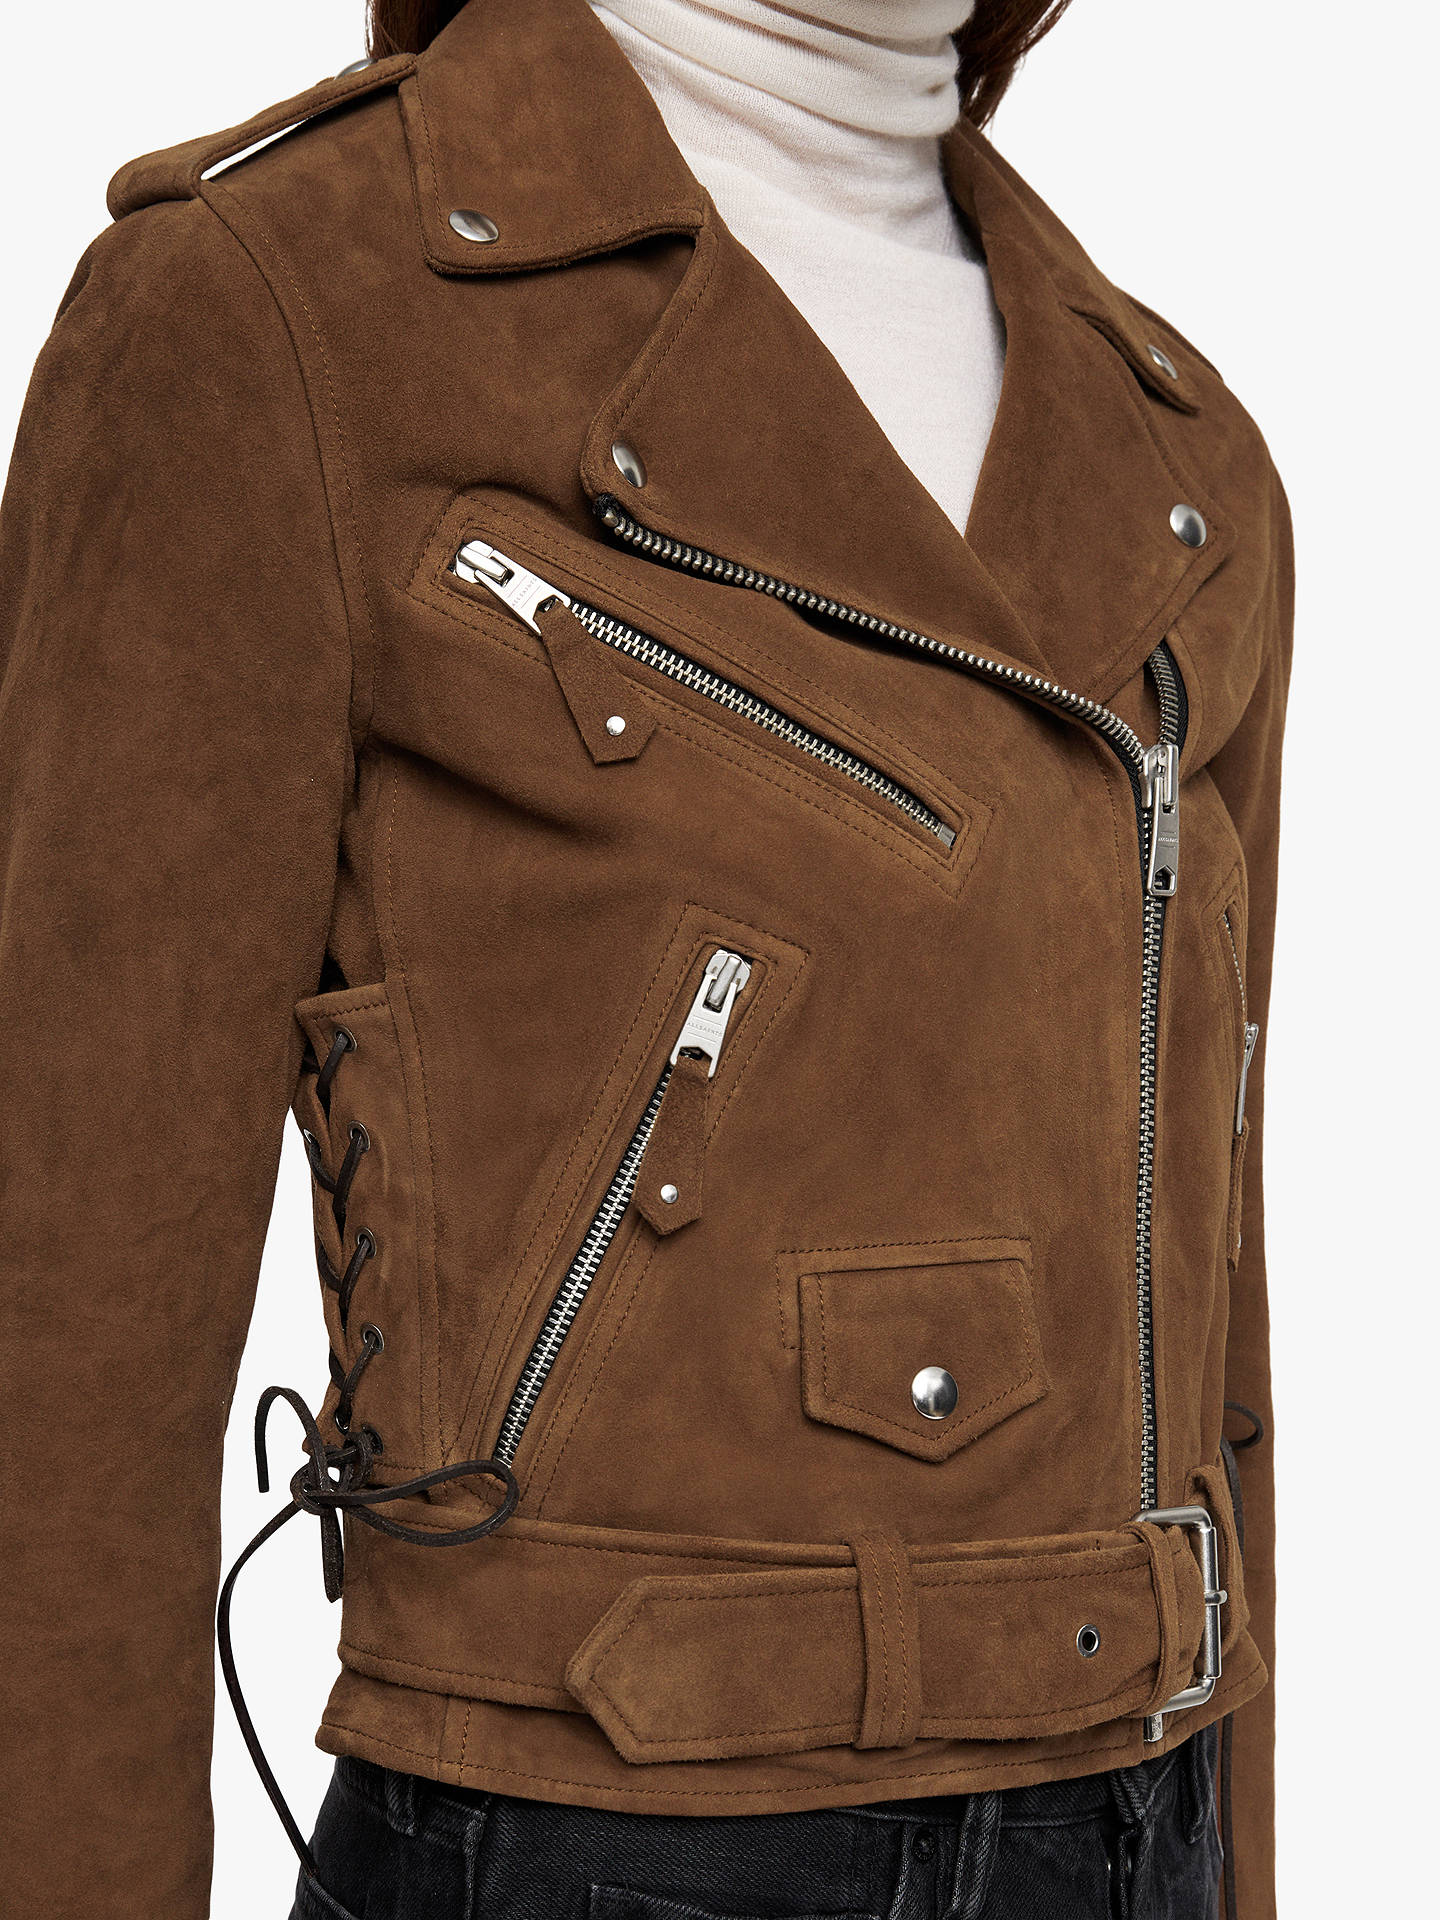 Buy AllSaints Sarana Suede Biker Jacket, Tan Brown, 10 Online at johnlewis.com